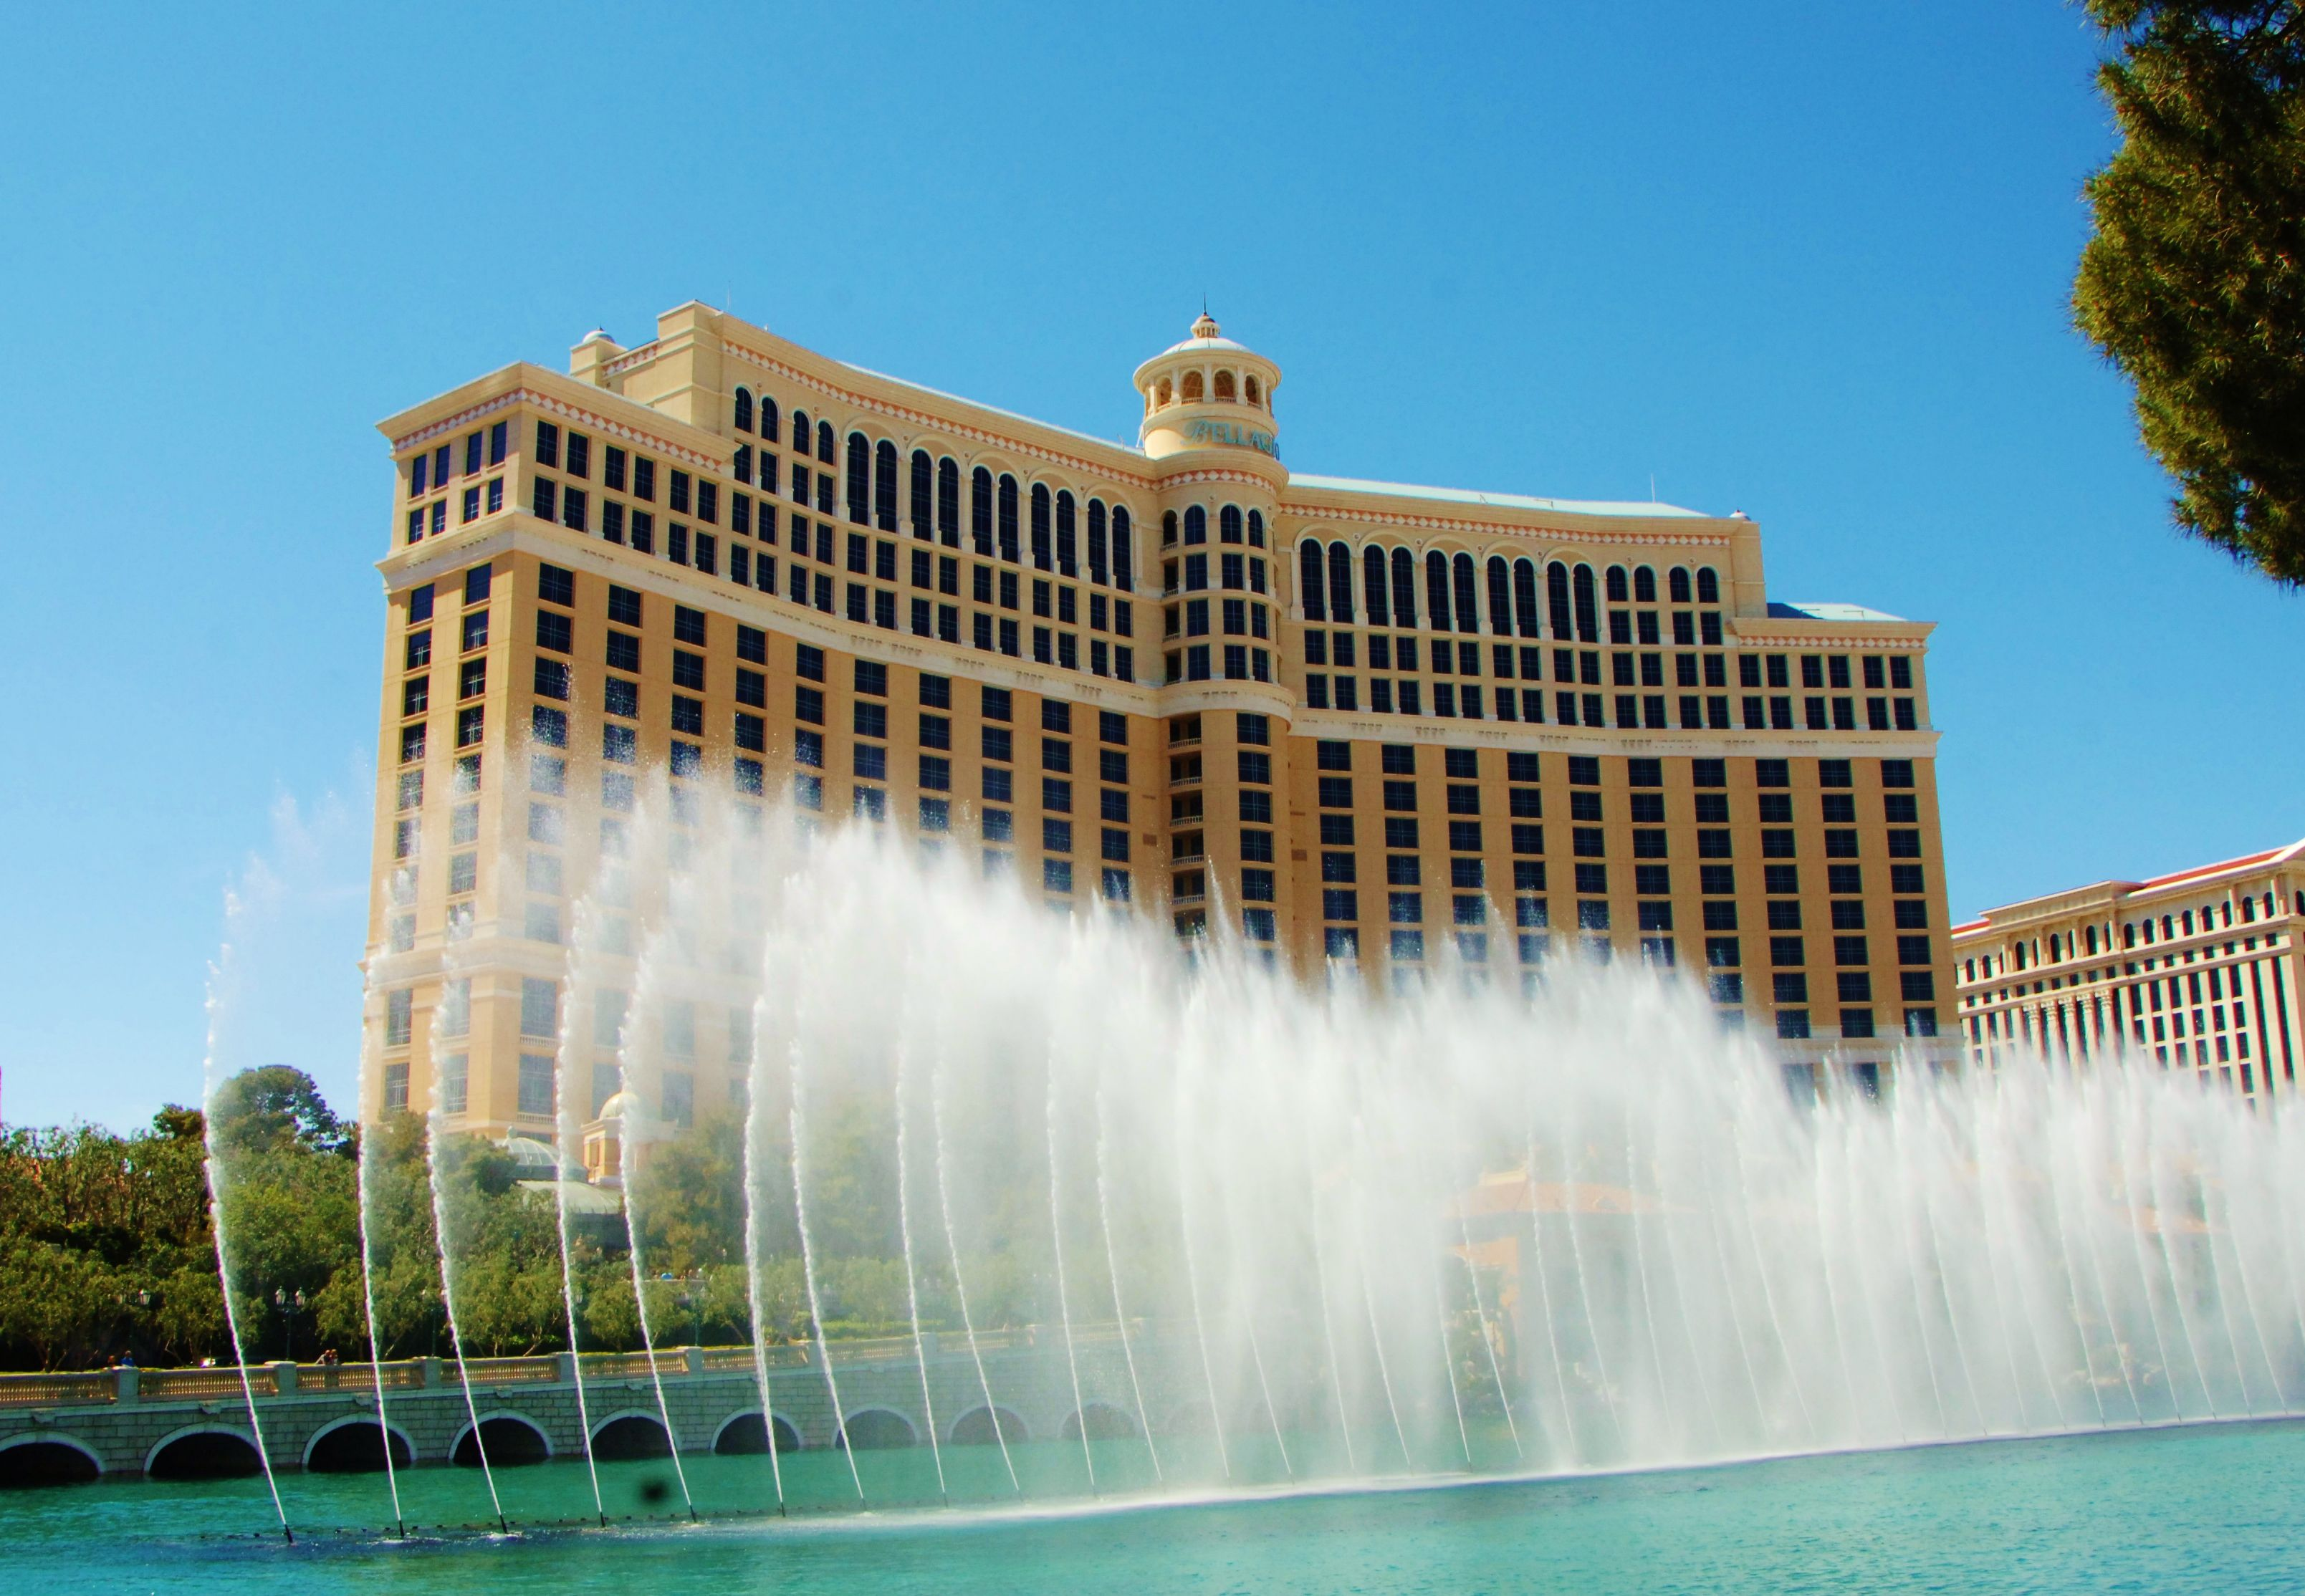 The Best Free Show In Las Vegas At Bellagio Fountains